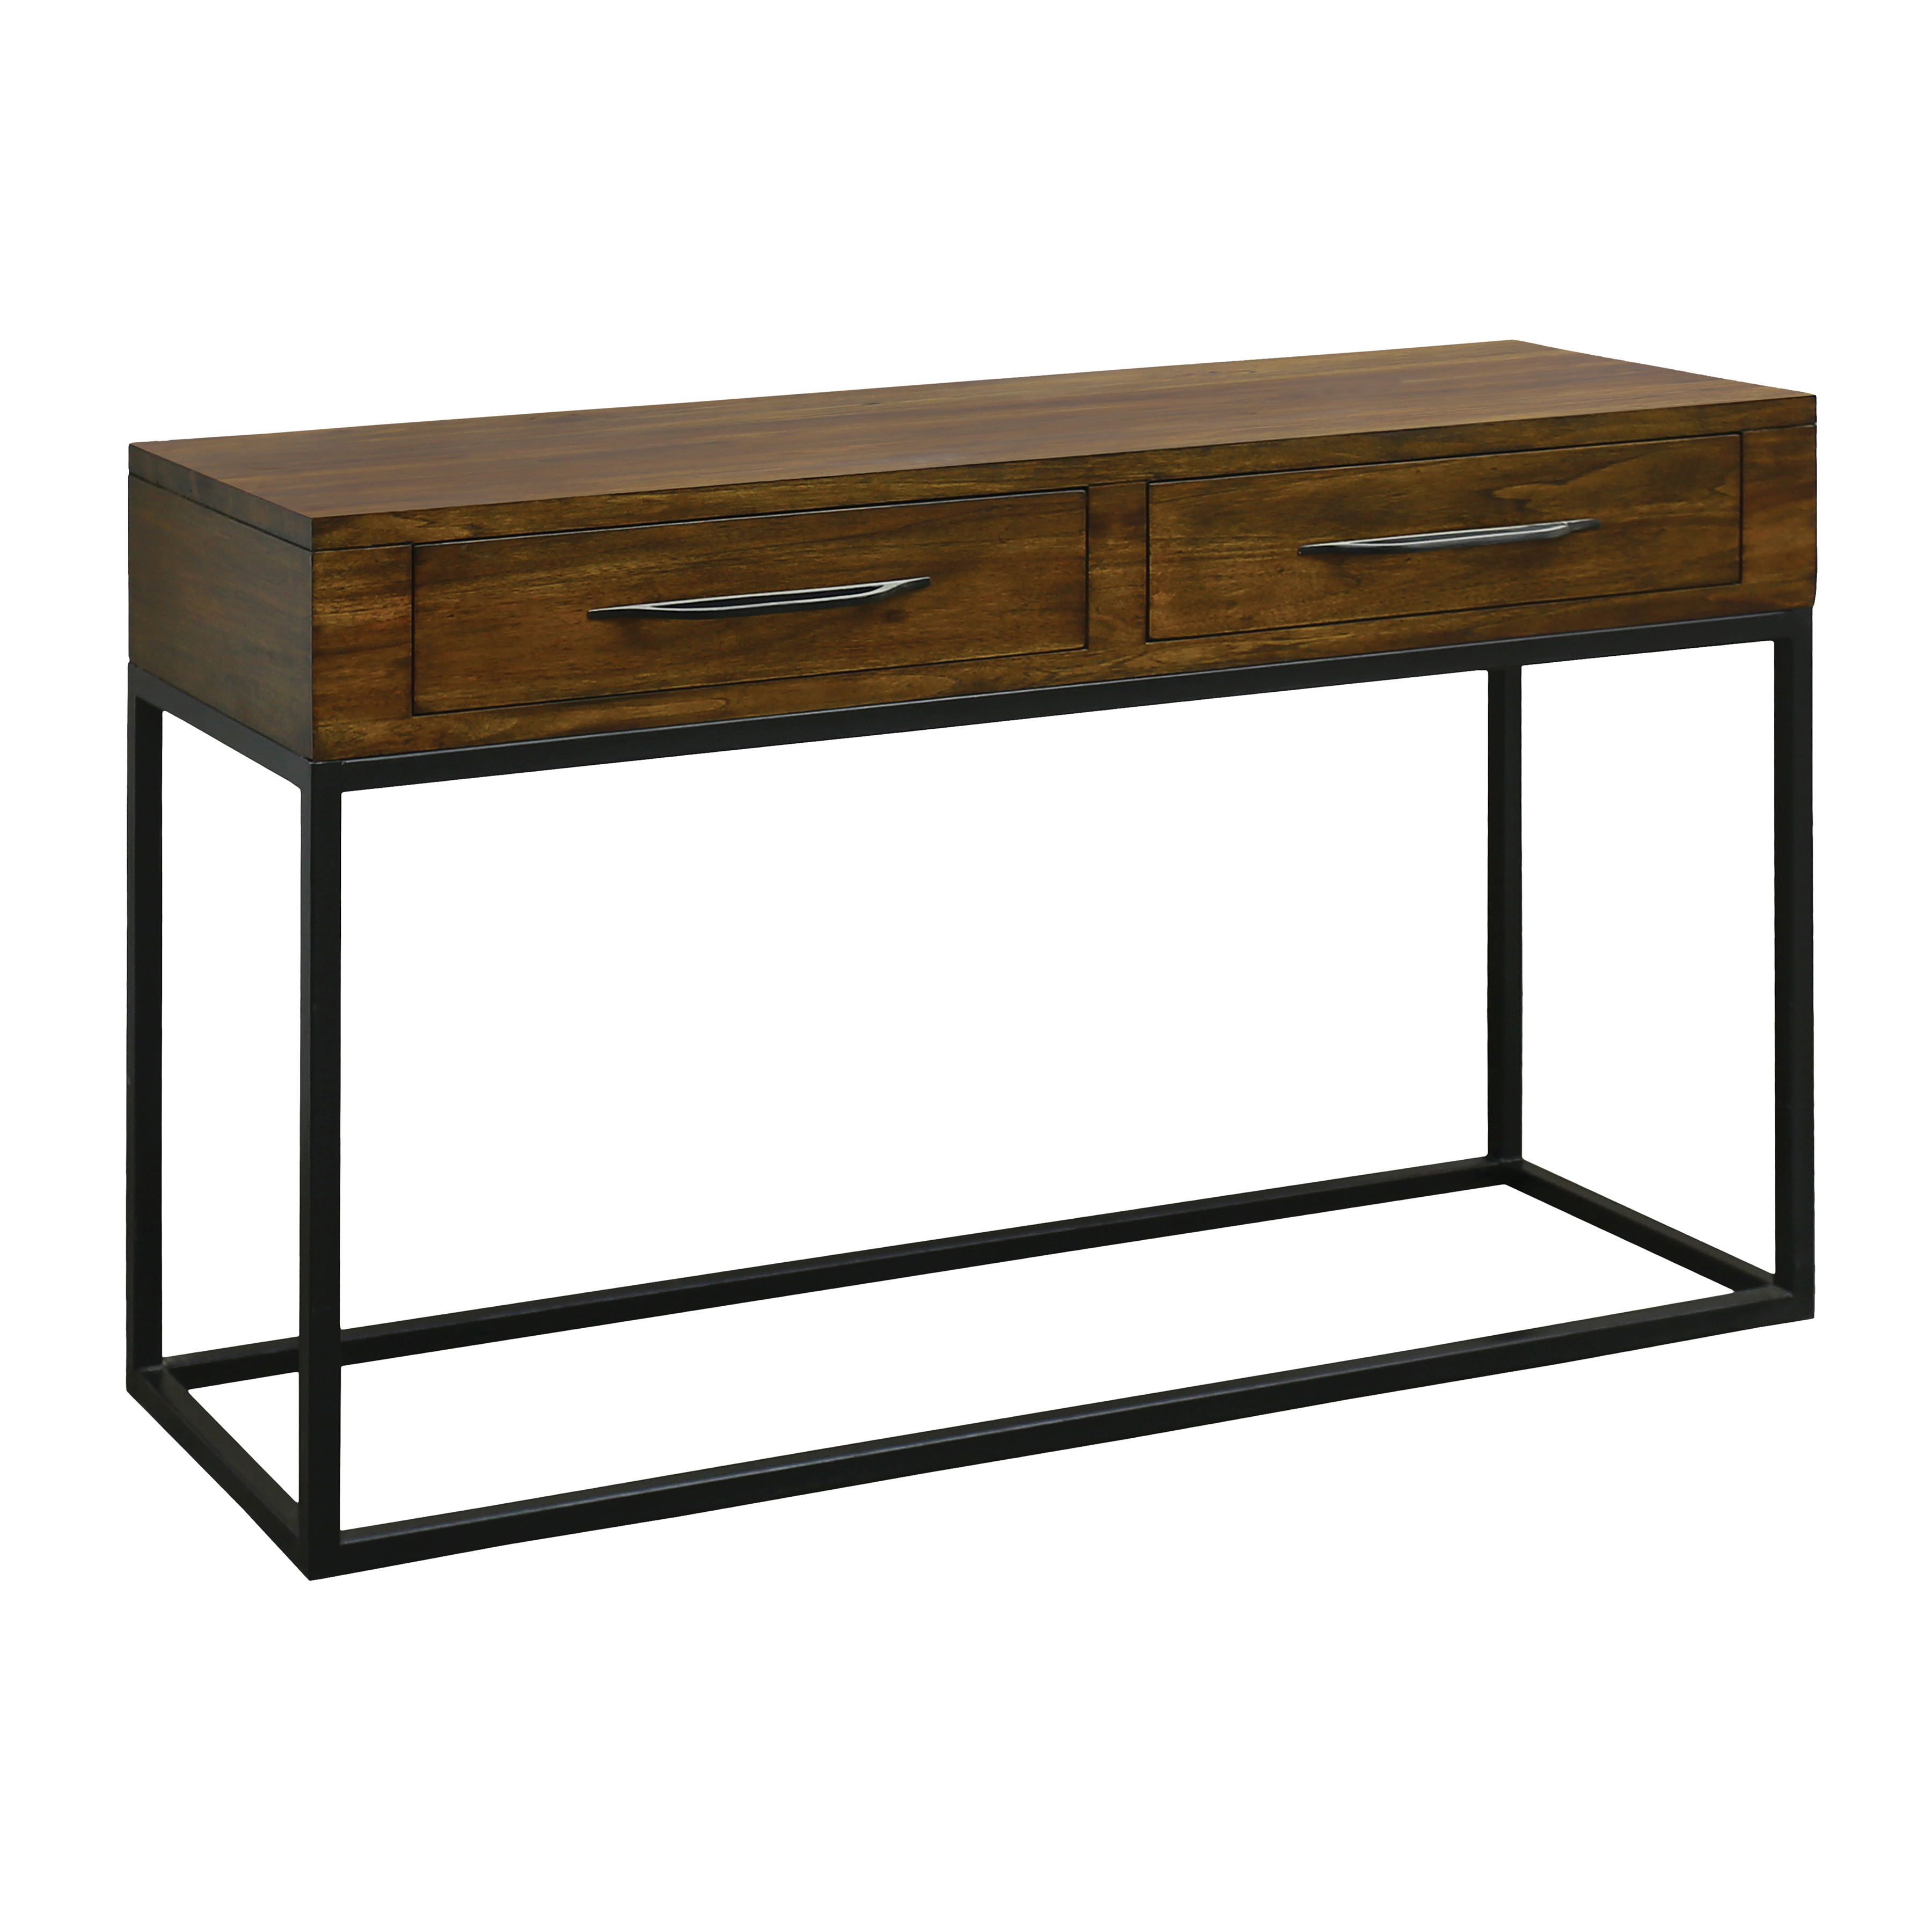 Stanley 2-Drawer Console Table in Wood and Metal | Elk Home